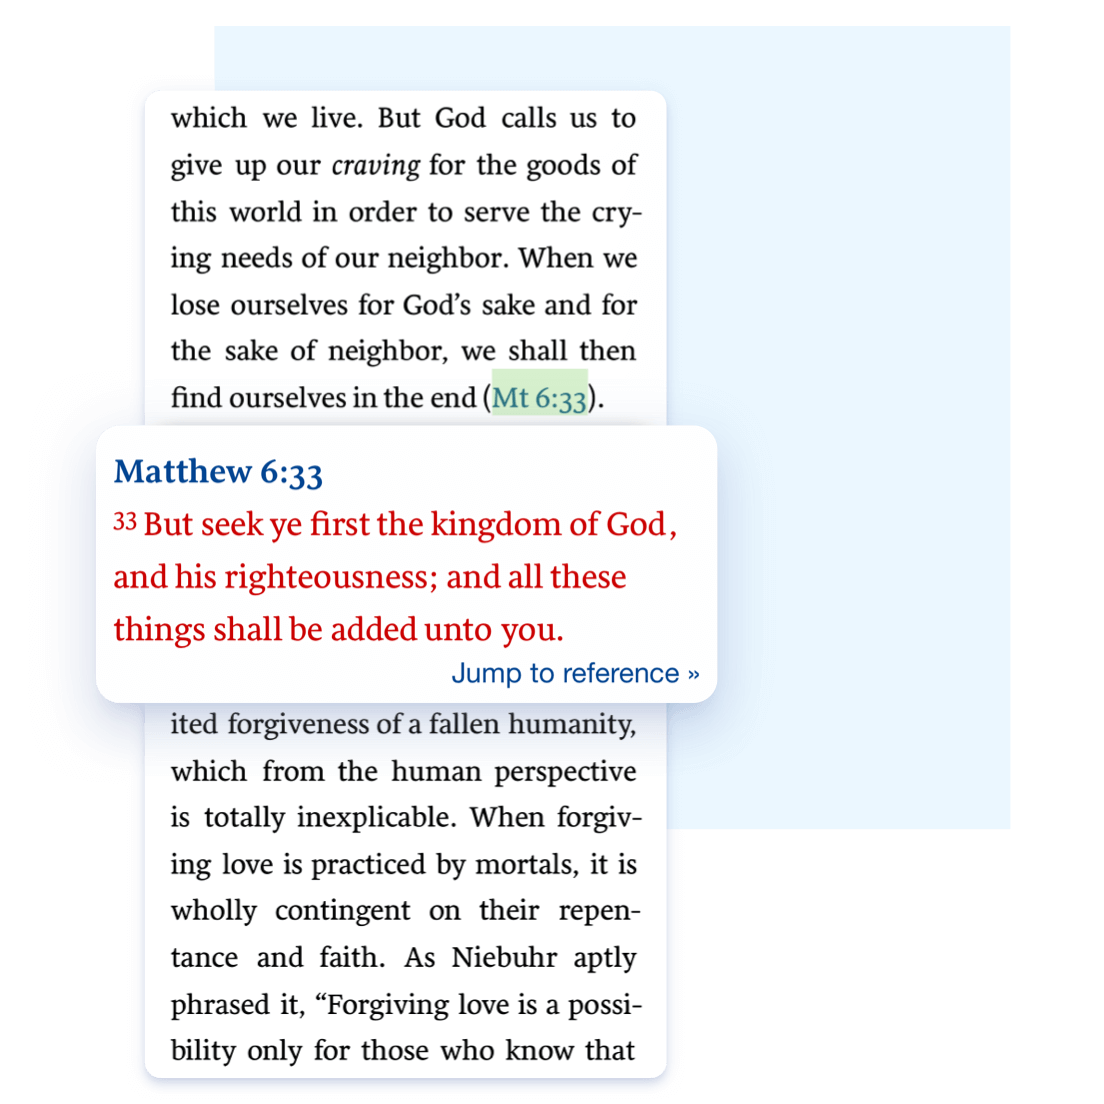 One-tap Bible verse lookup